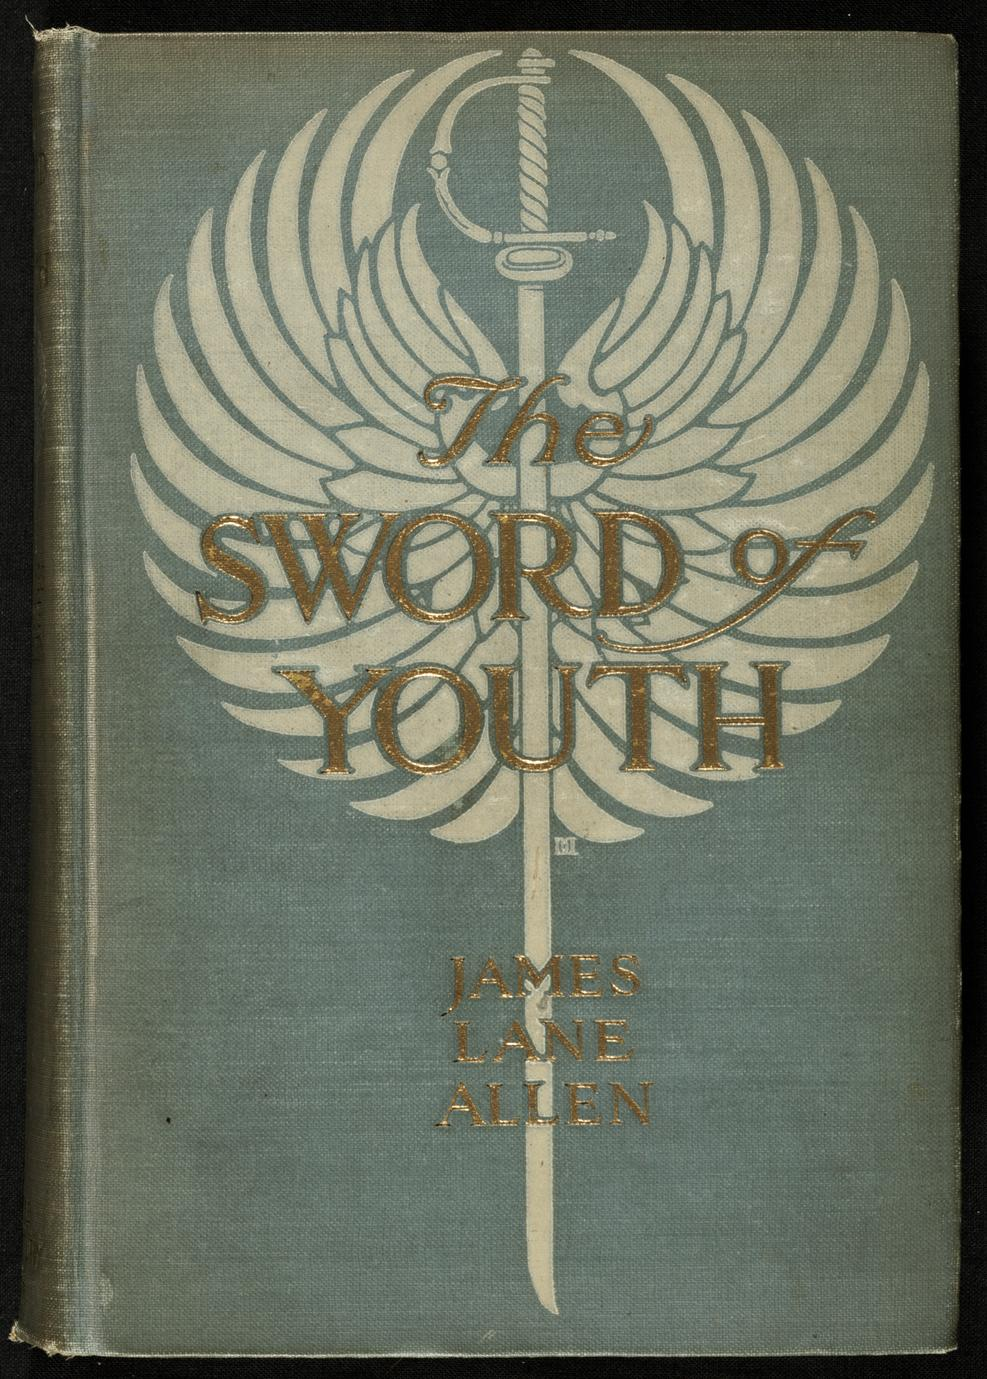 The sword of youth (1 of 3)